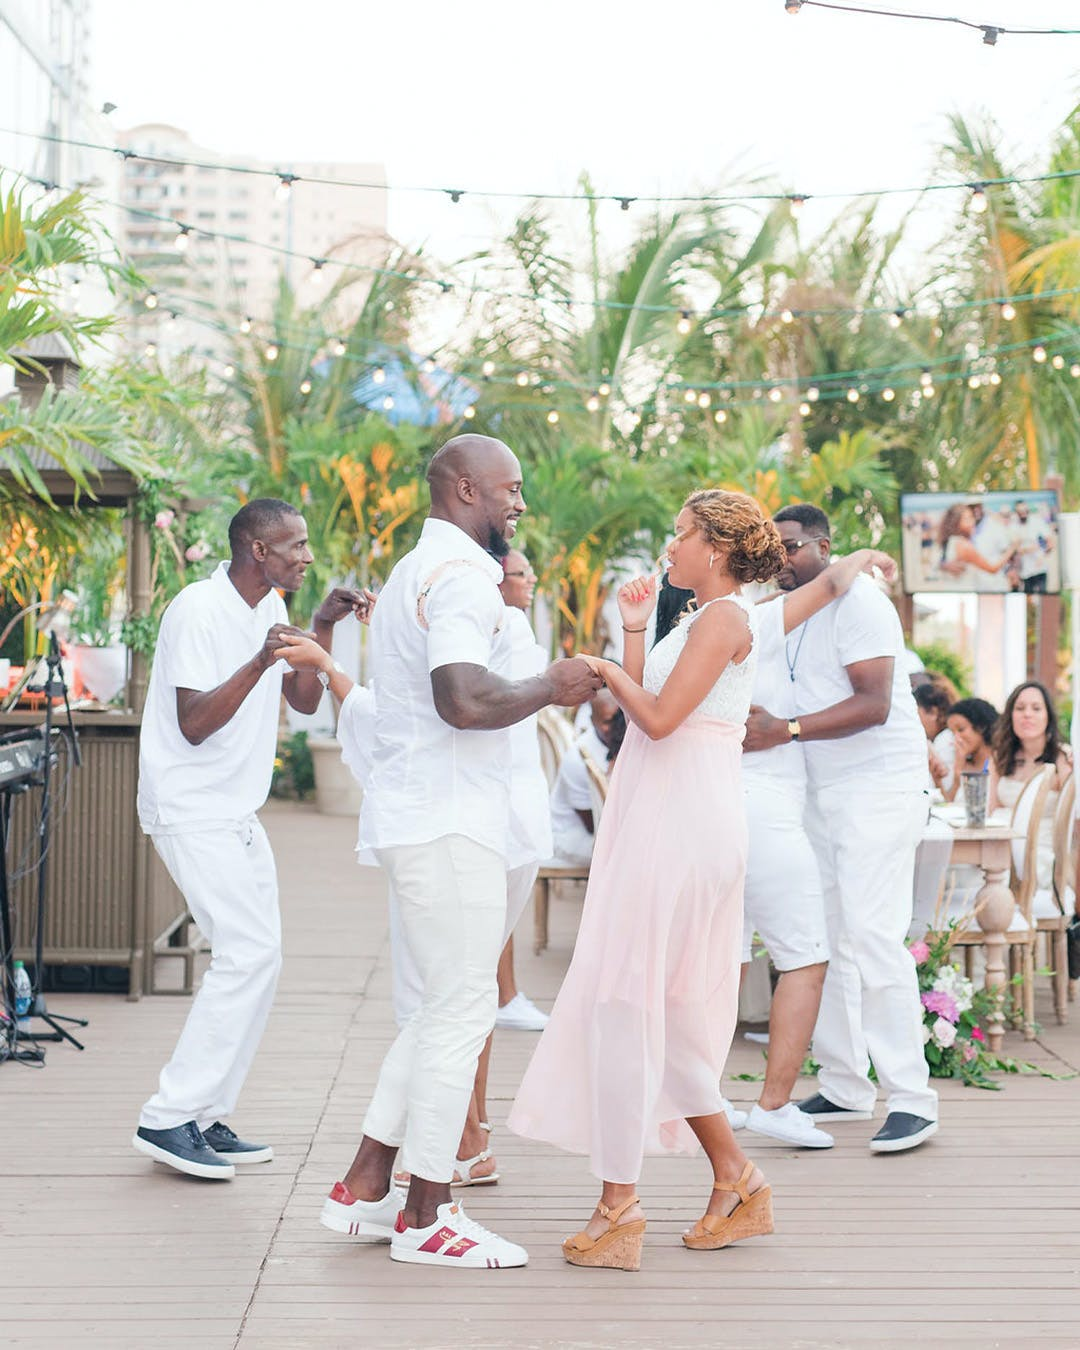 Guests dance at outdoor engagement party with greenery | PartySlate